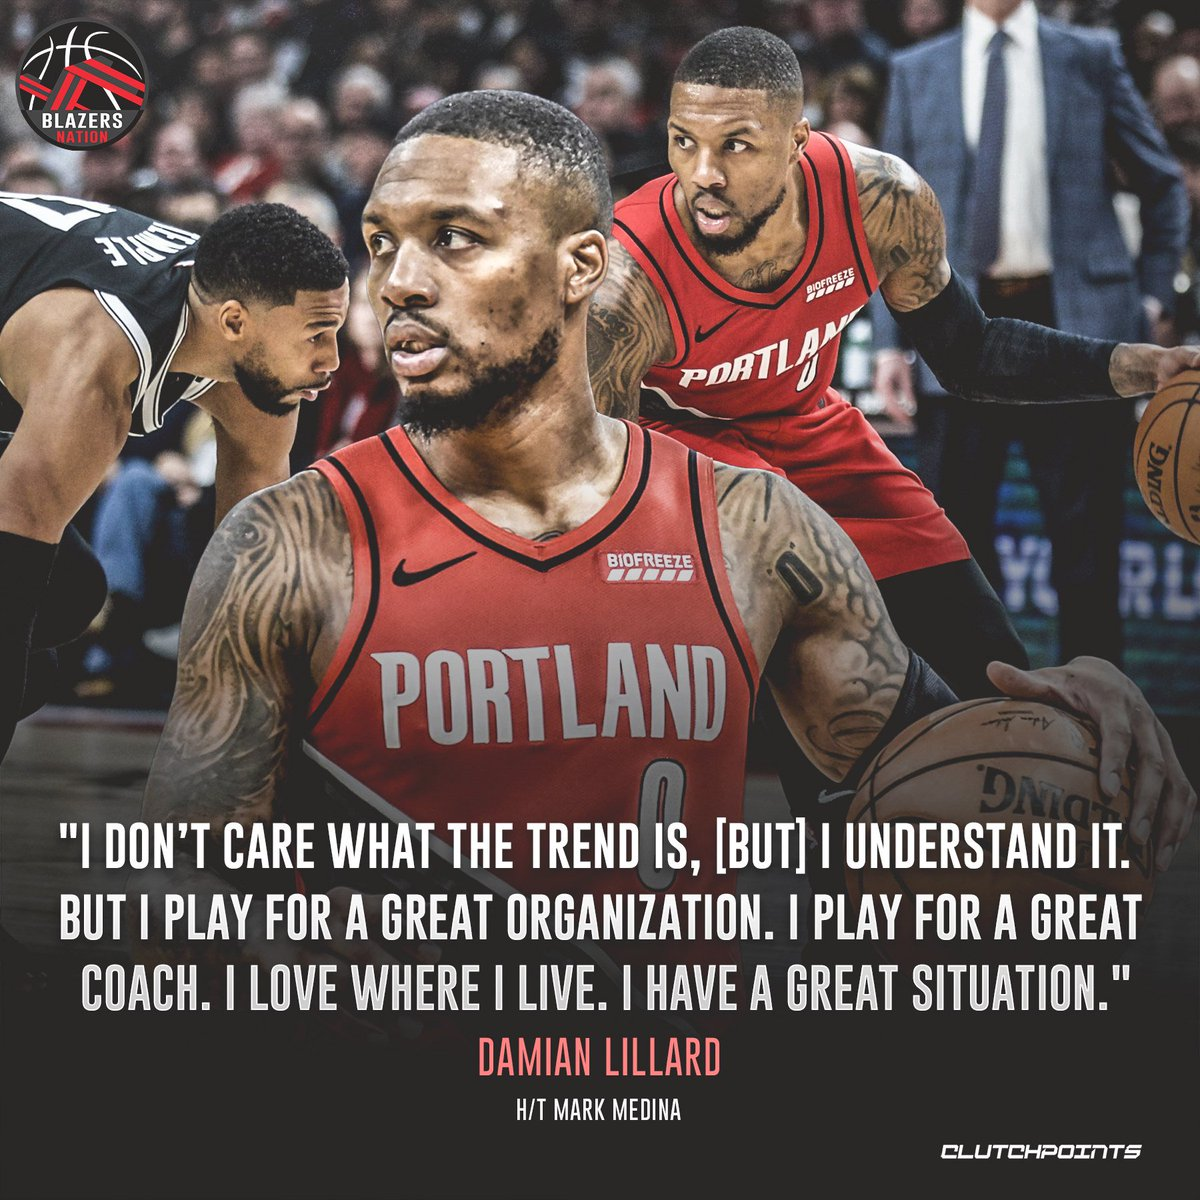 We can't help but smile, Damian Lillard. 💯👏  #RipCity #Blazers